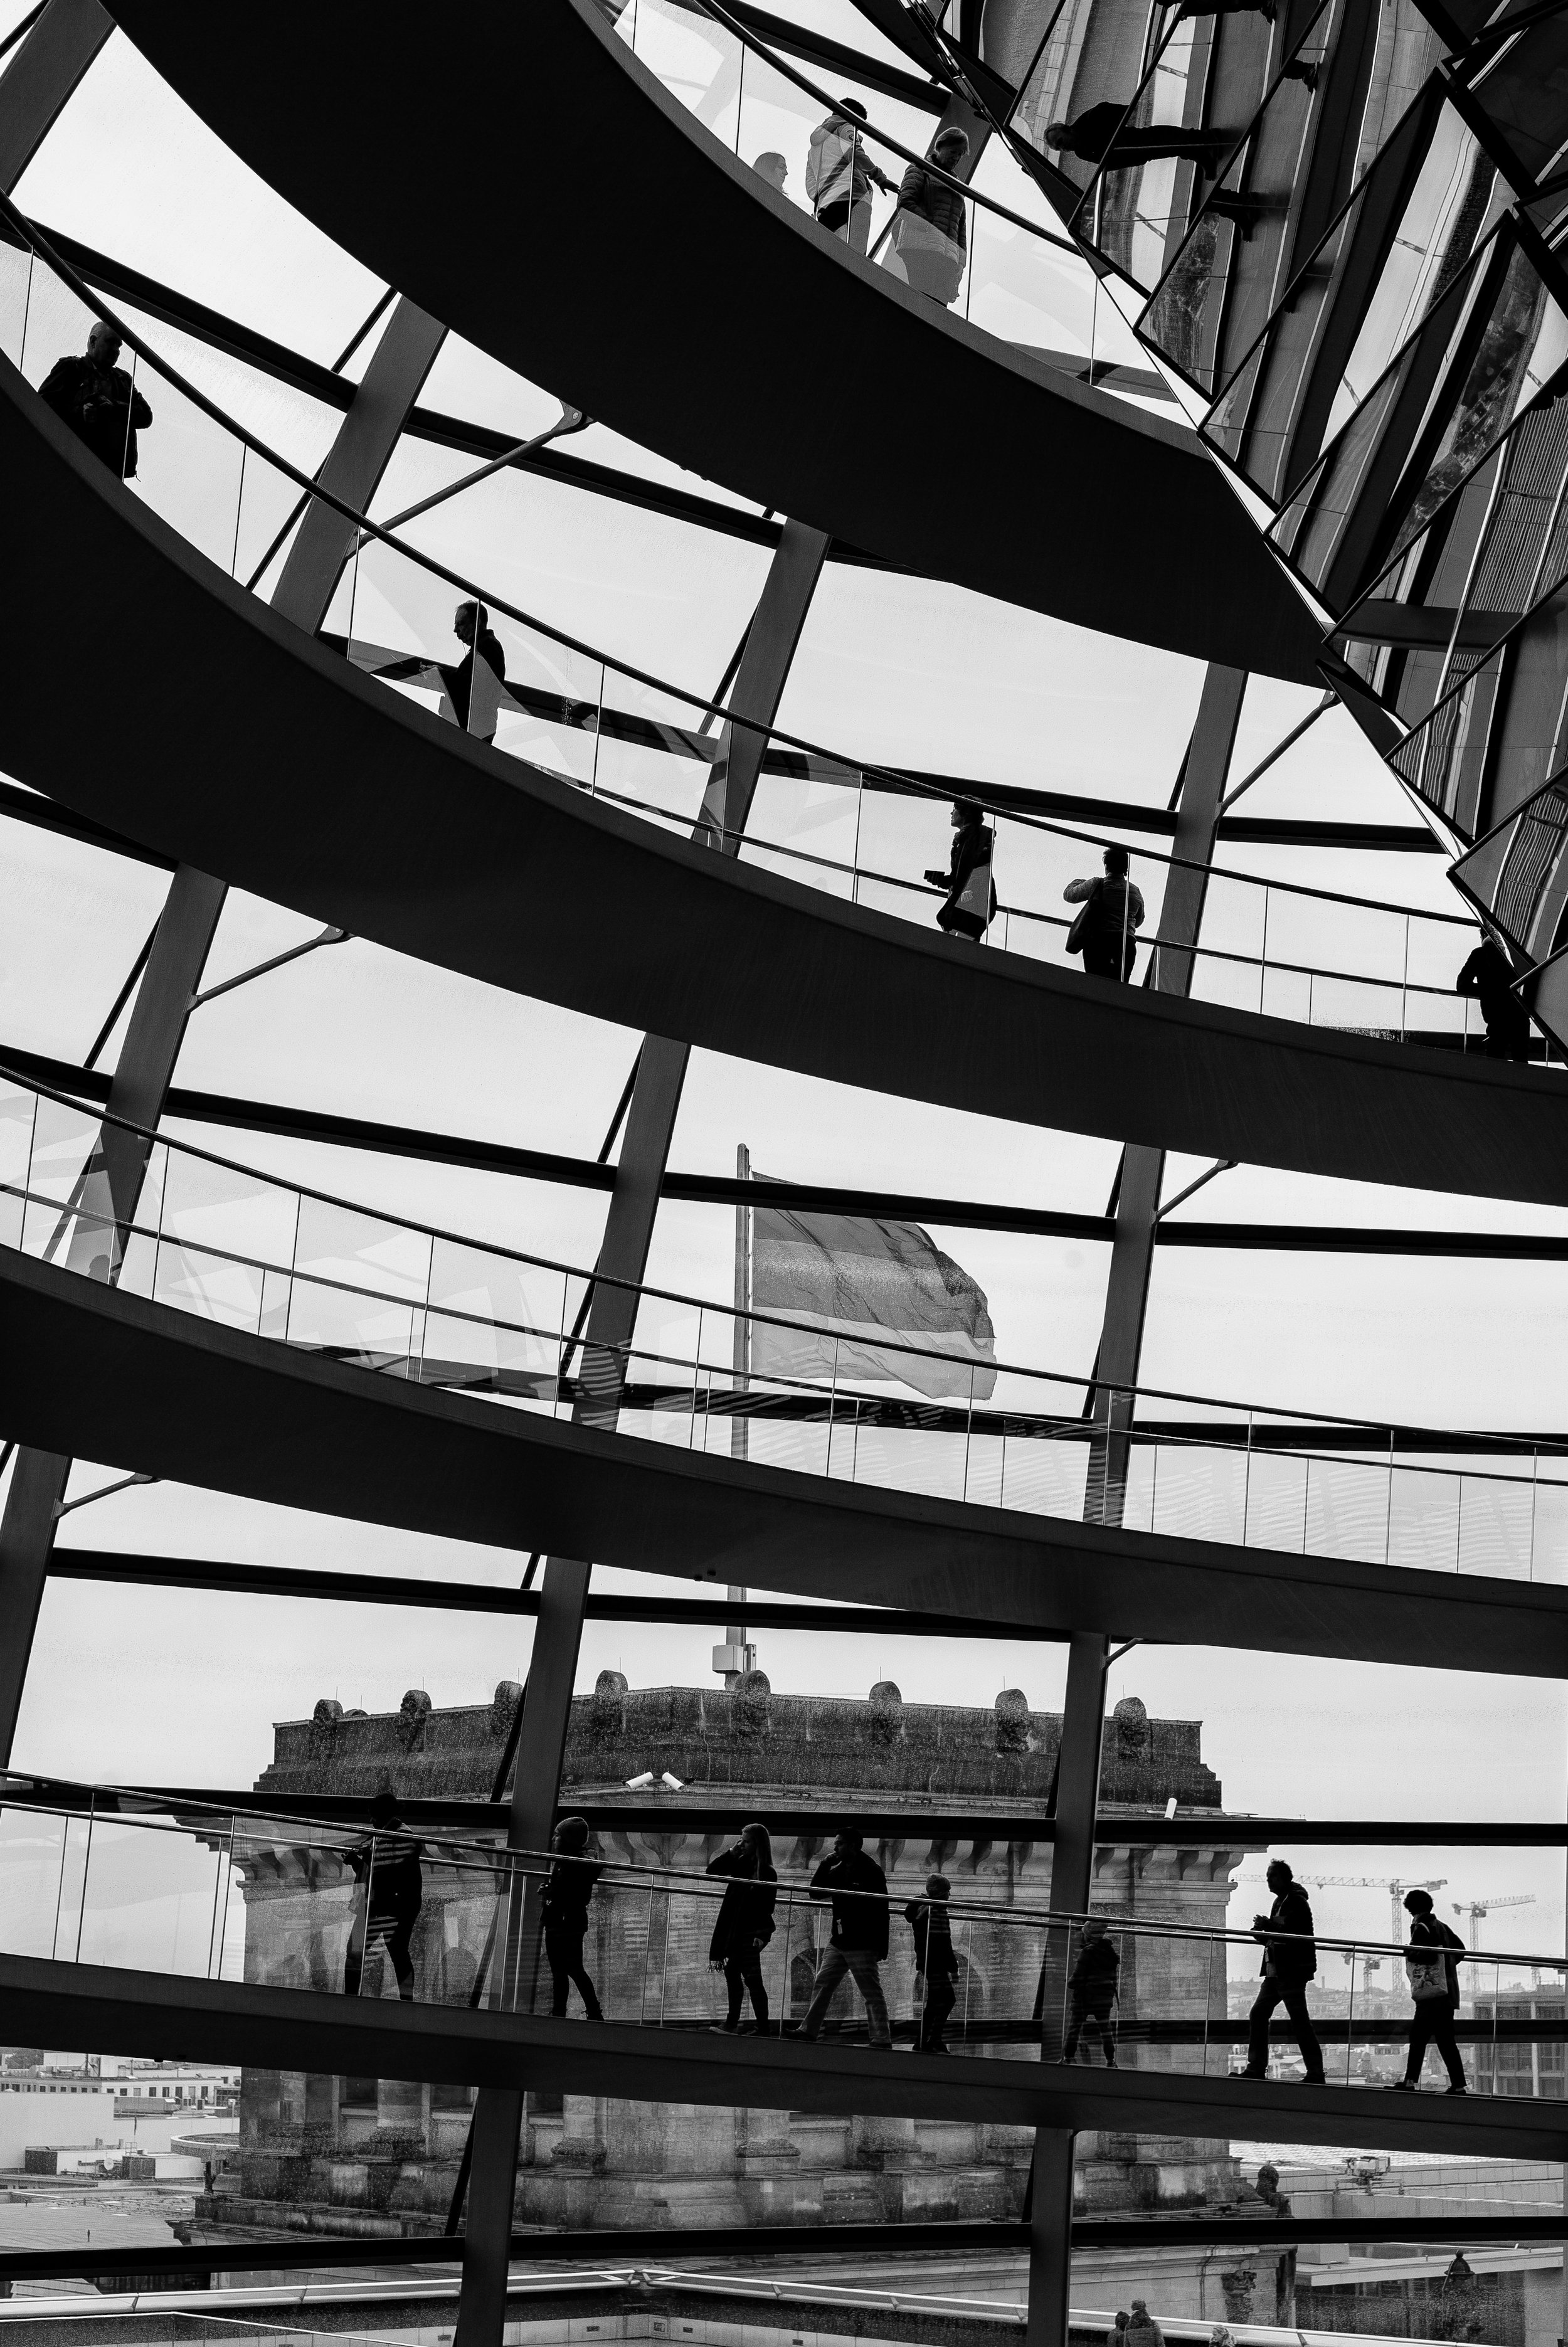 Reichstag Building, Berlin. Germany. 2019.